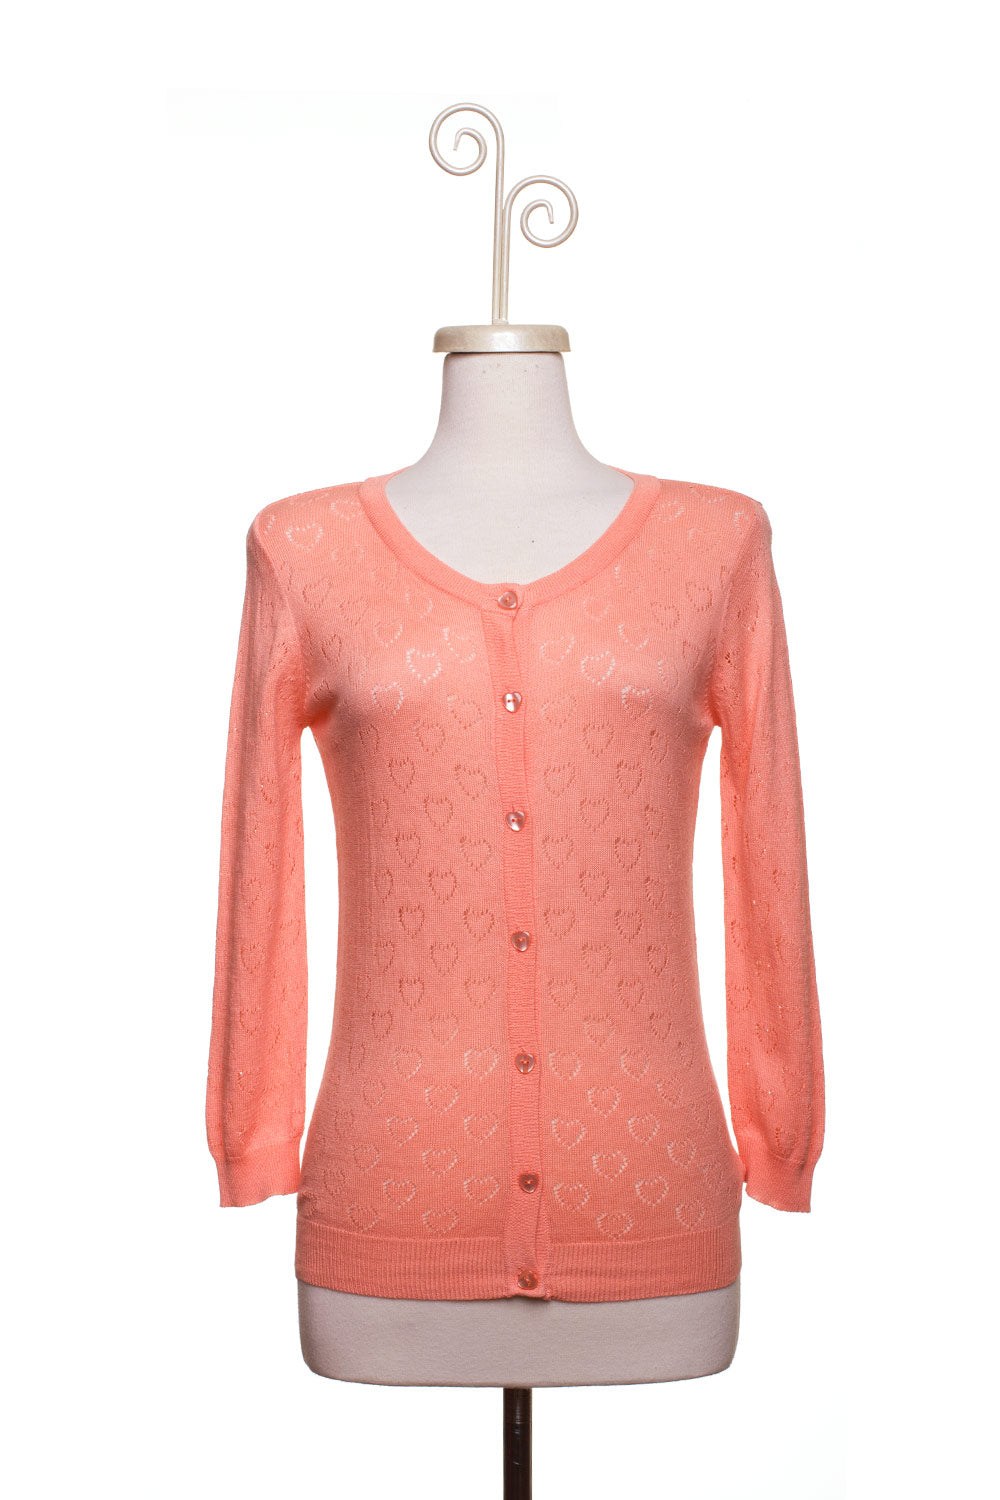 Type 1 Peach and Every Day Cardigan